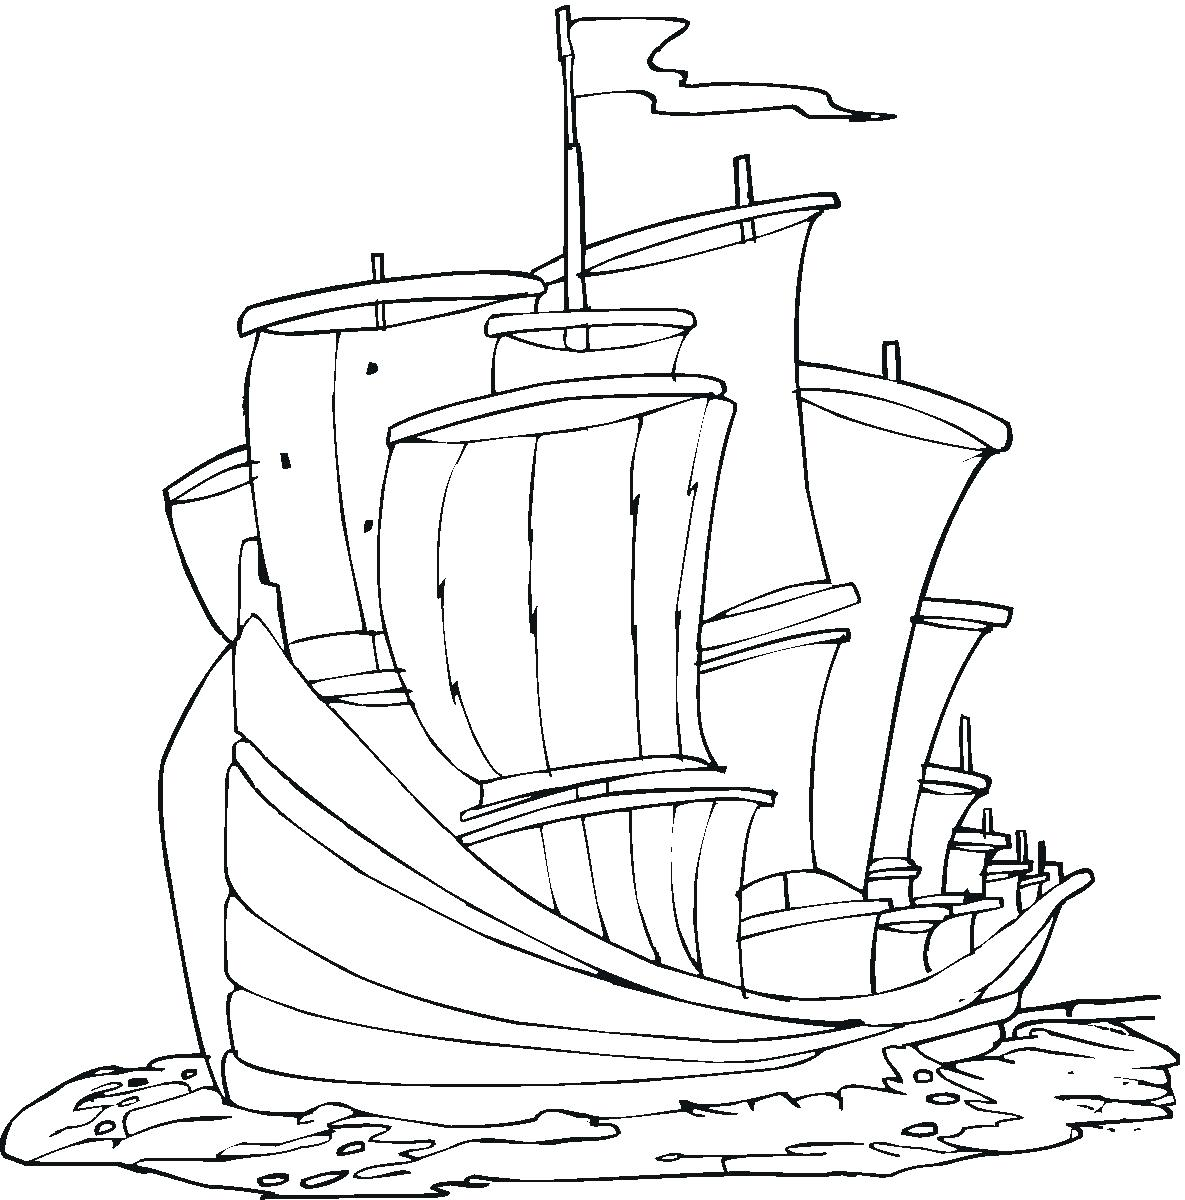 Cruise Ship Drawing at GetDrawings.com | Free for personal use ...